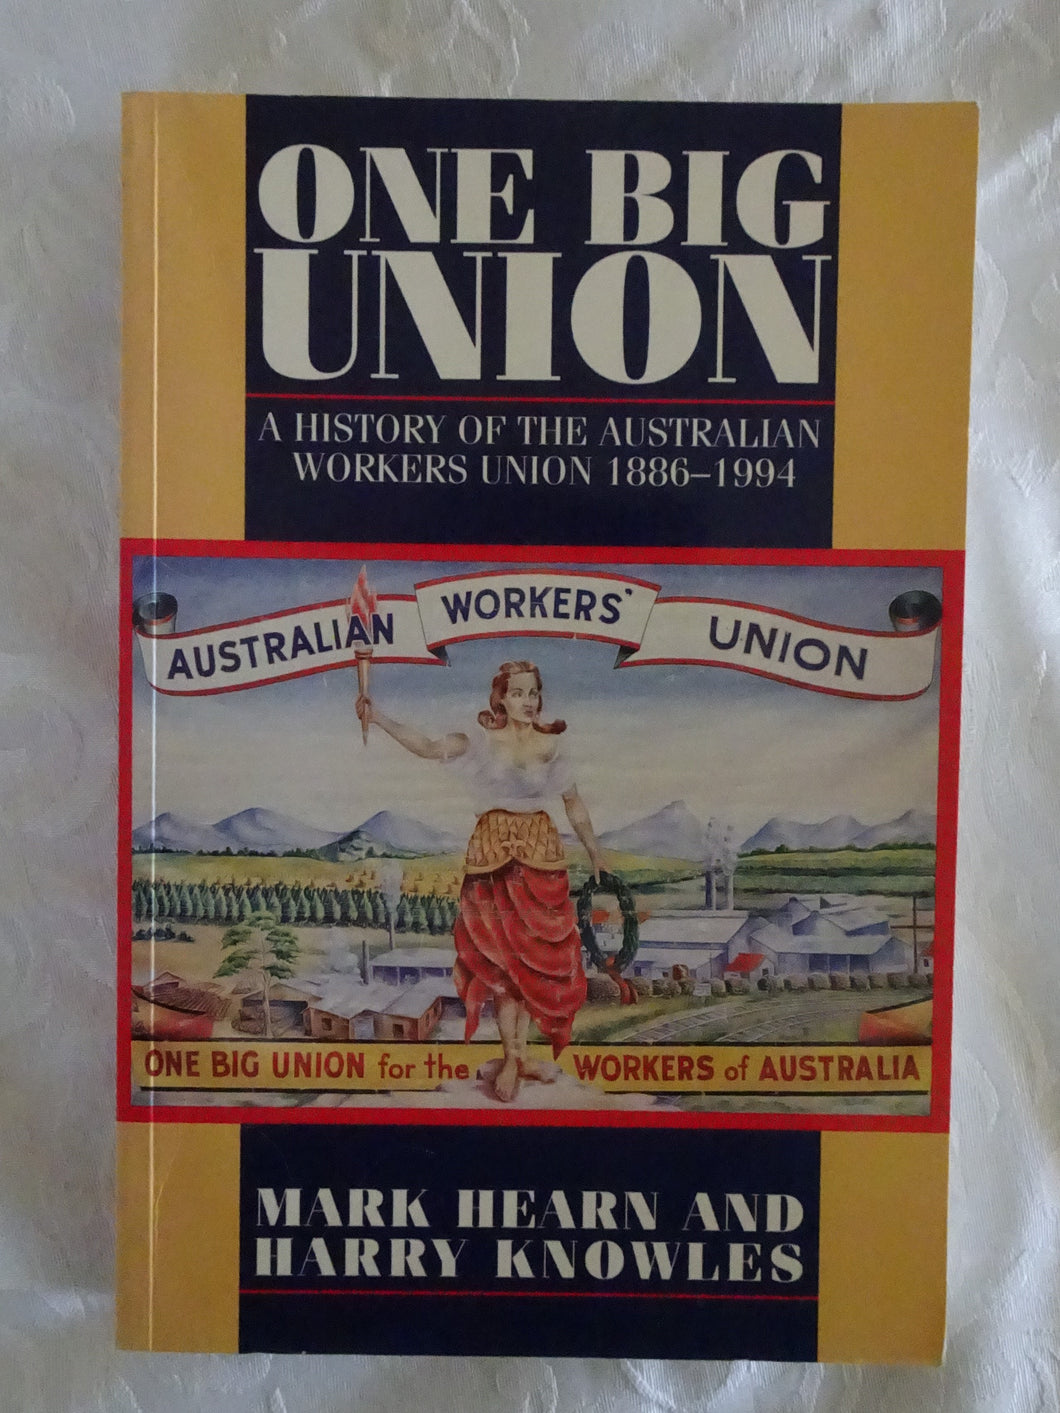 One Big Union by Mark Hearn and Harry Knowles